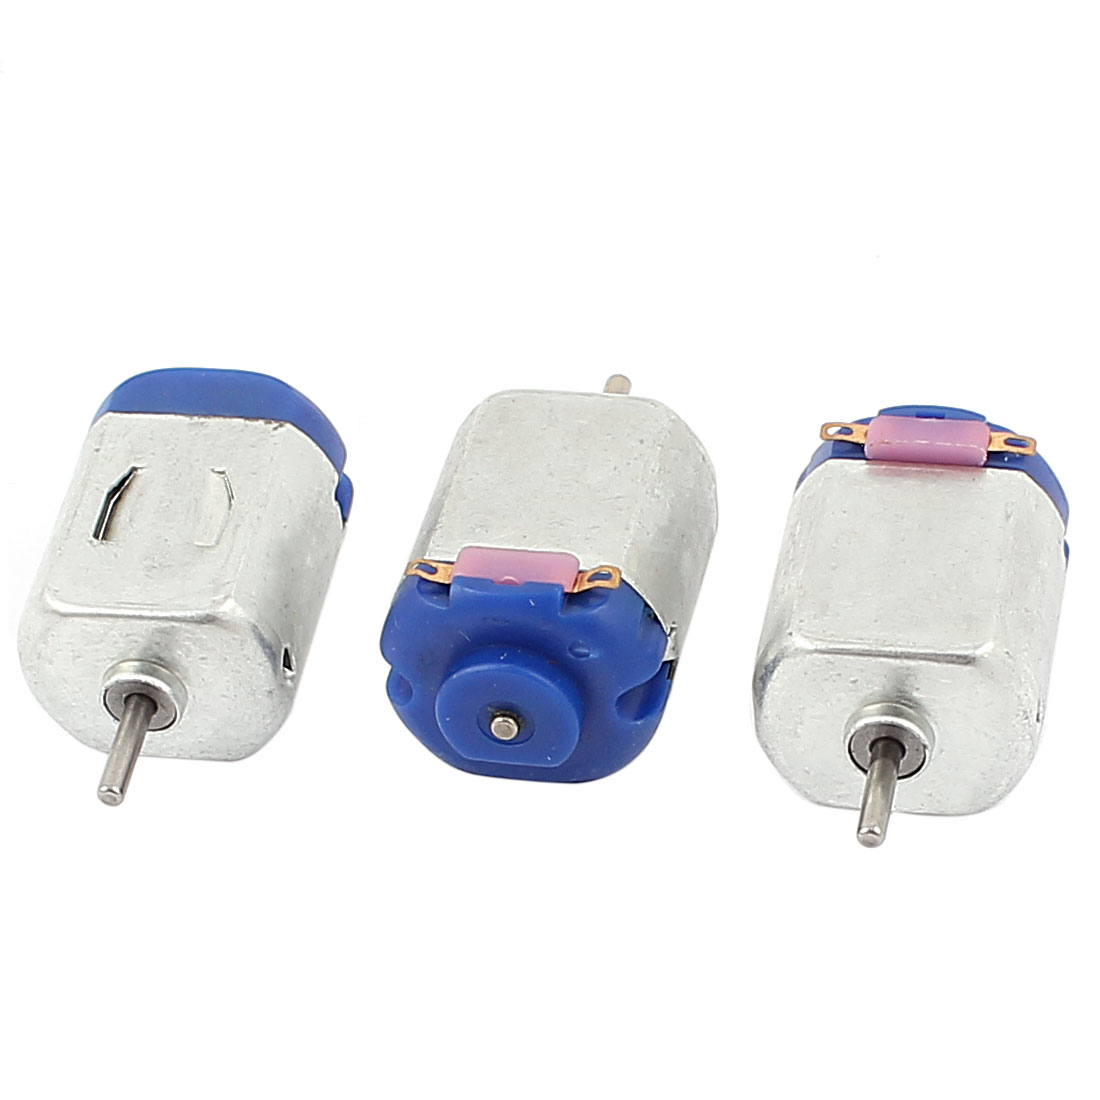 3Pcs DC 3V 16000RPM 2mm Dia Shaft Gearbox Electric Motors